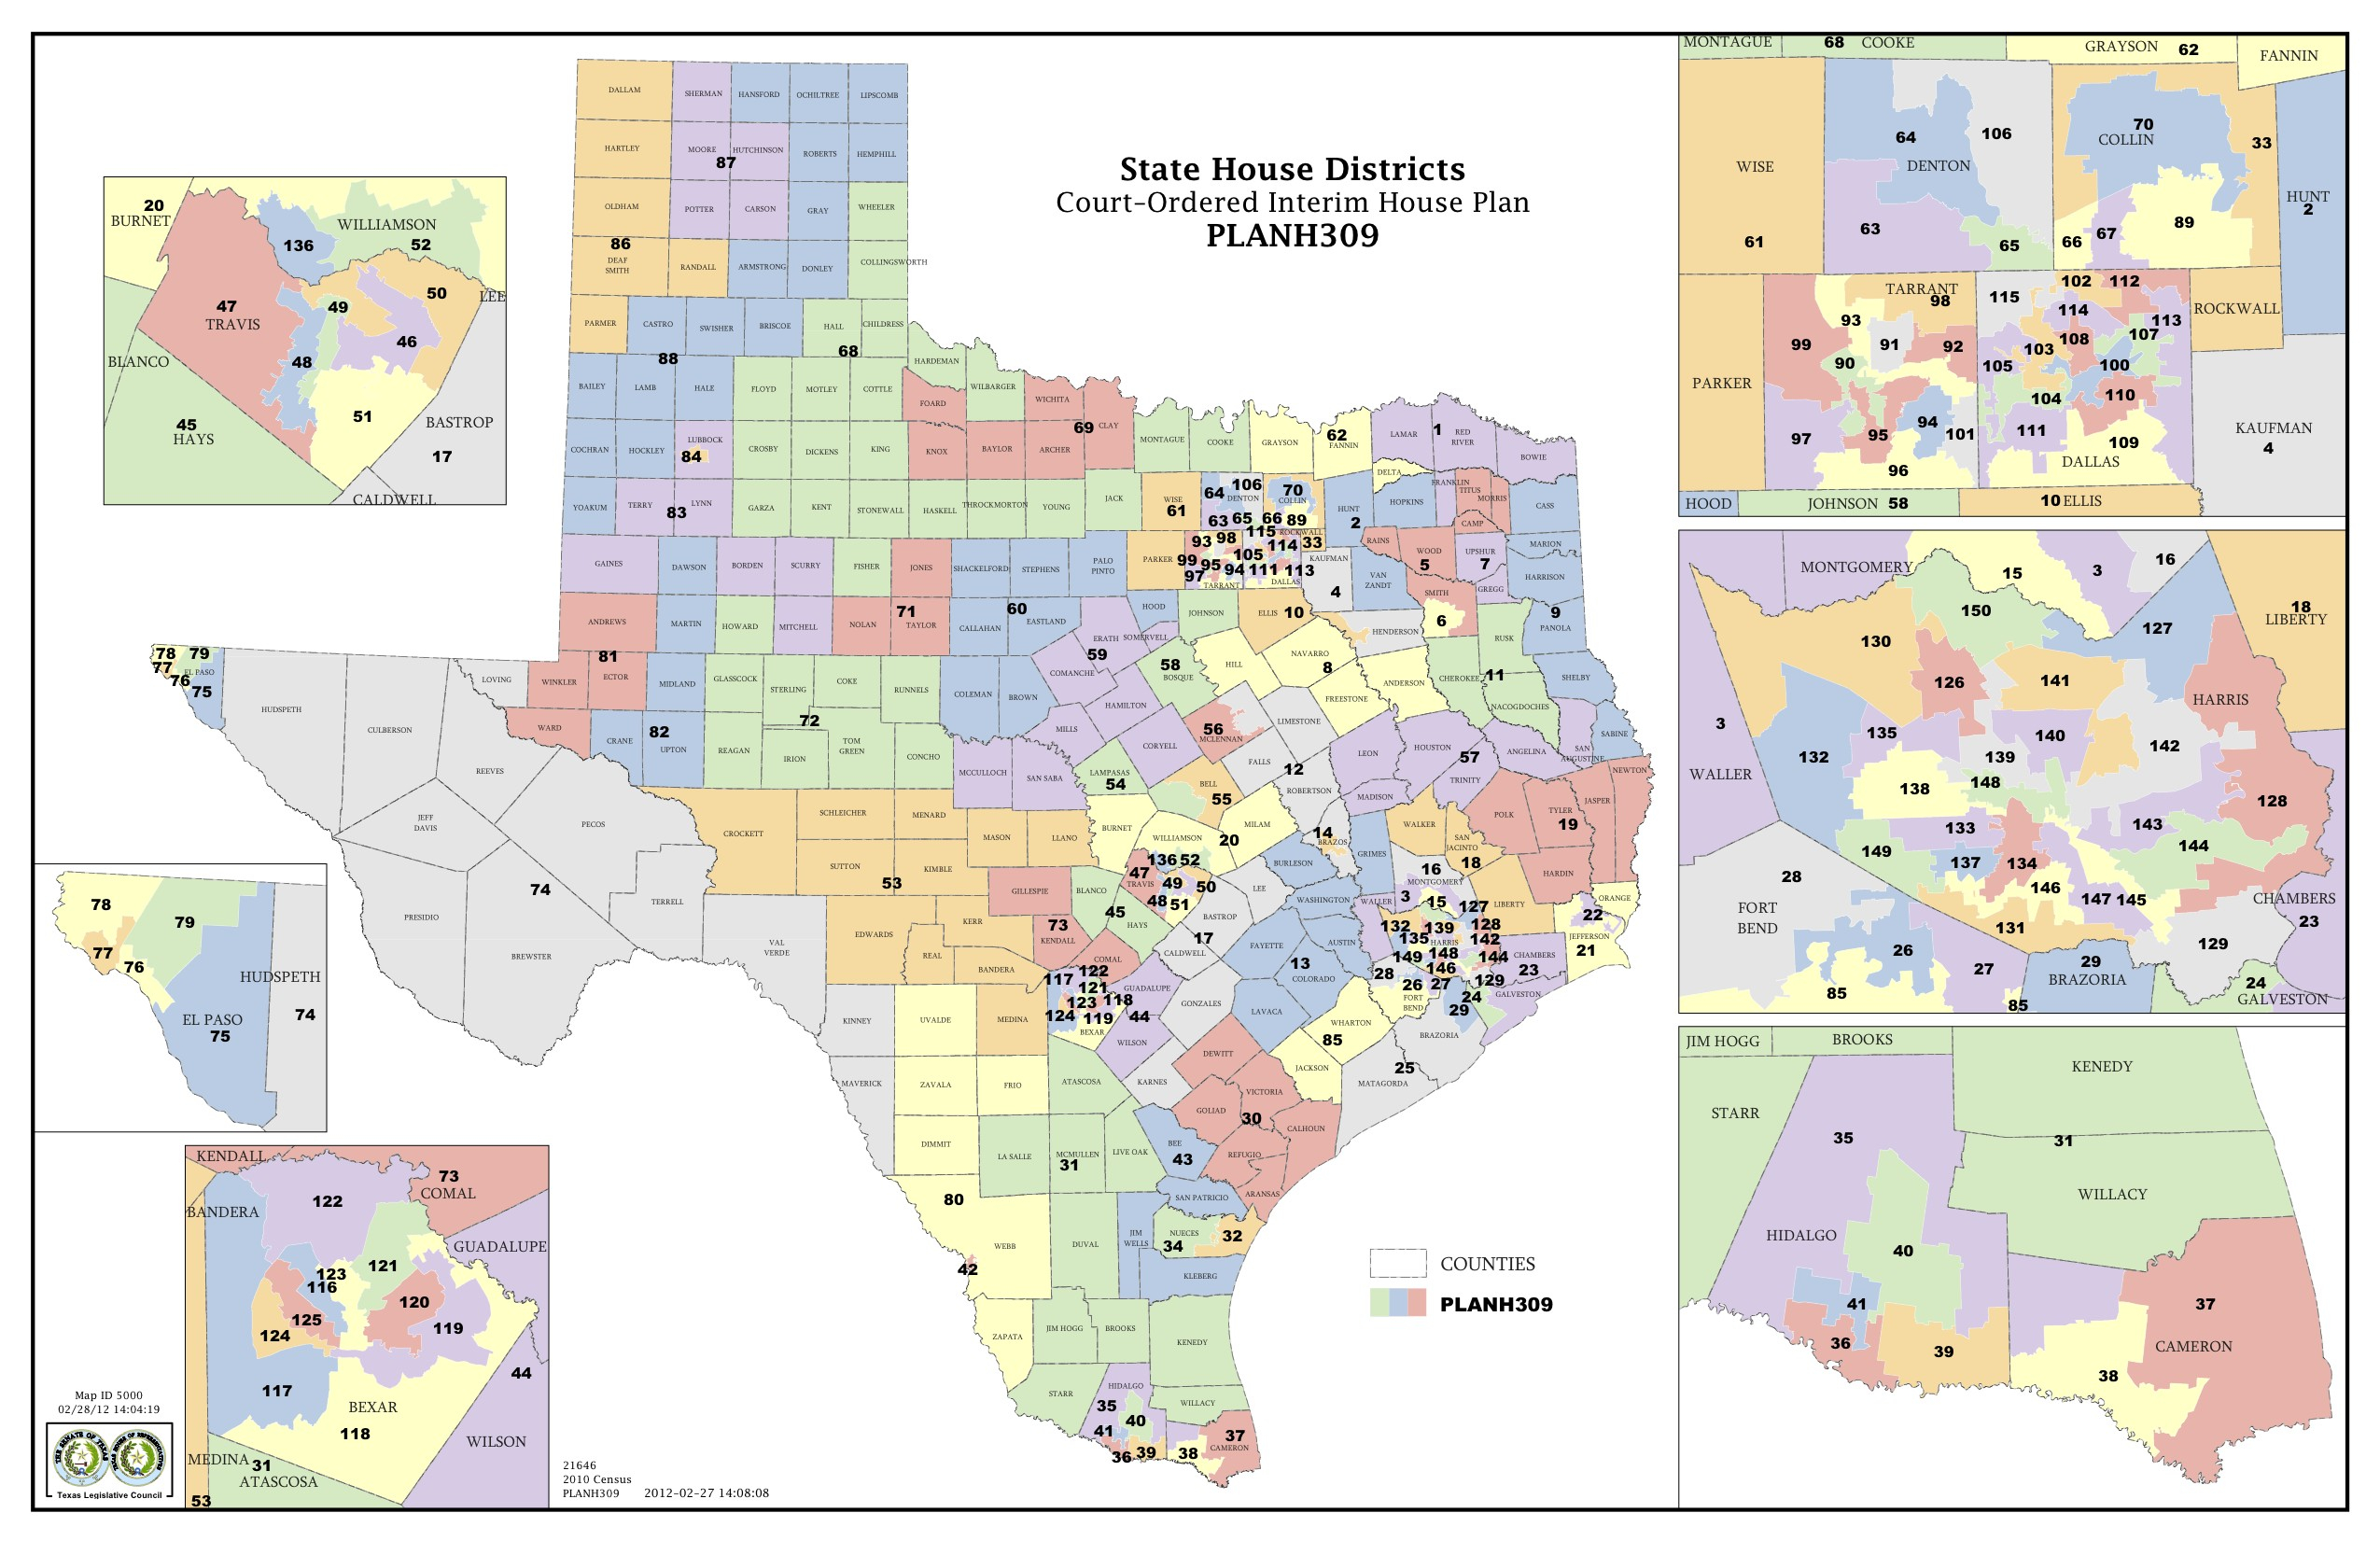 Texas Us Senate District Map New State Senate Awesome Map Texas - Texas Senate District 16 Map